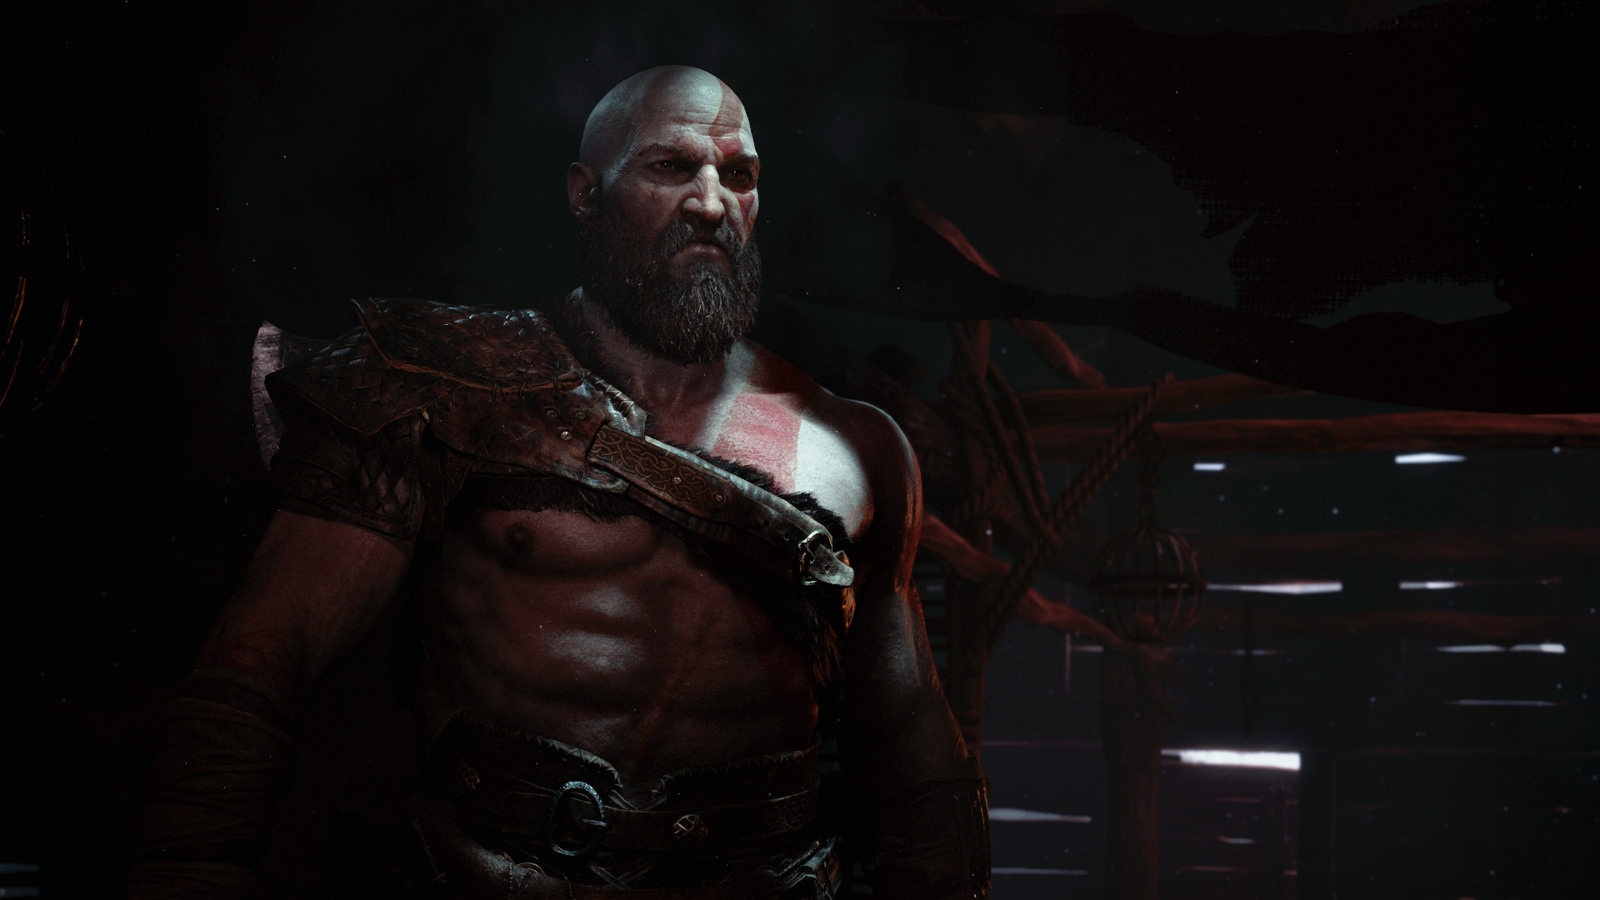 Kratos God of War 4 E3 PlayStation